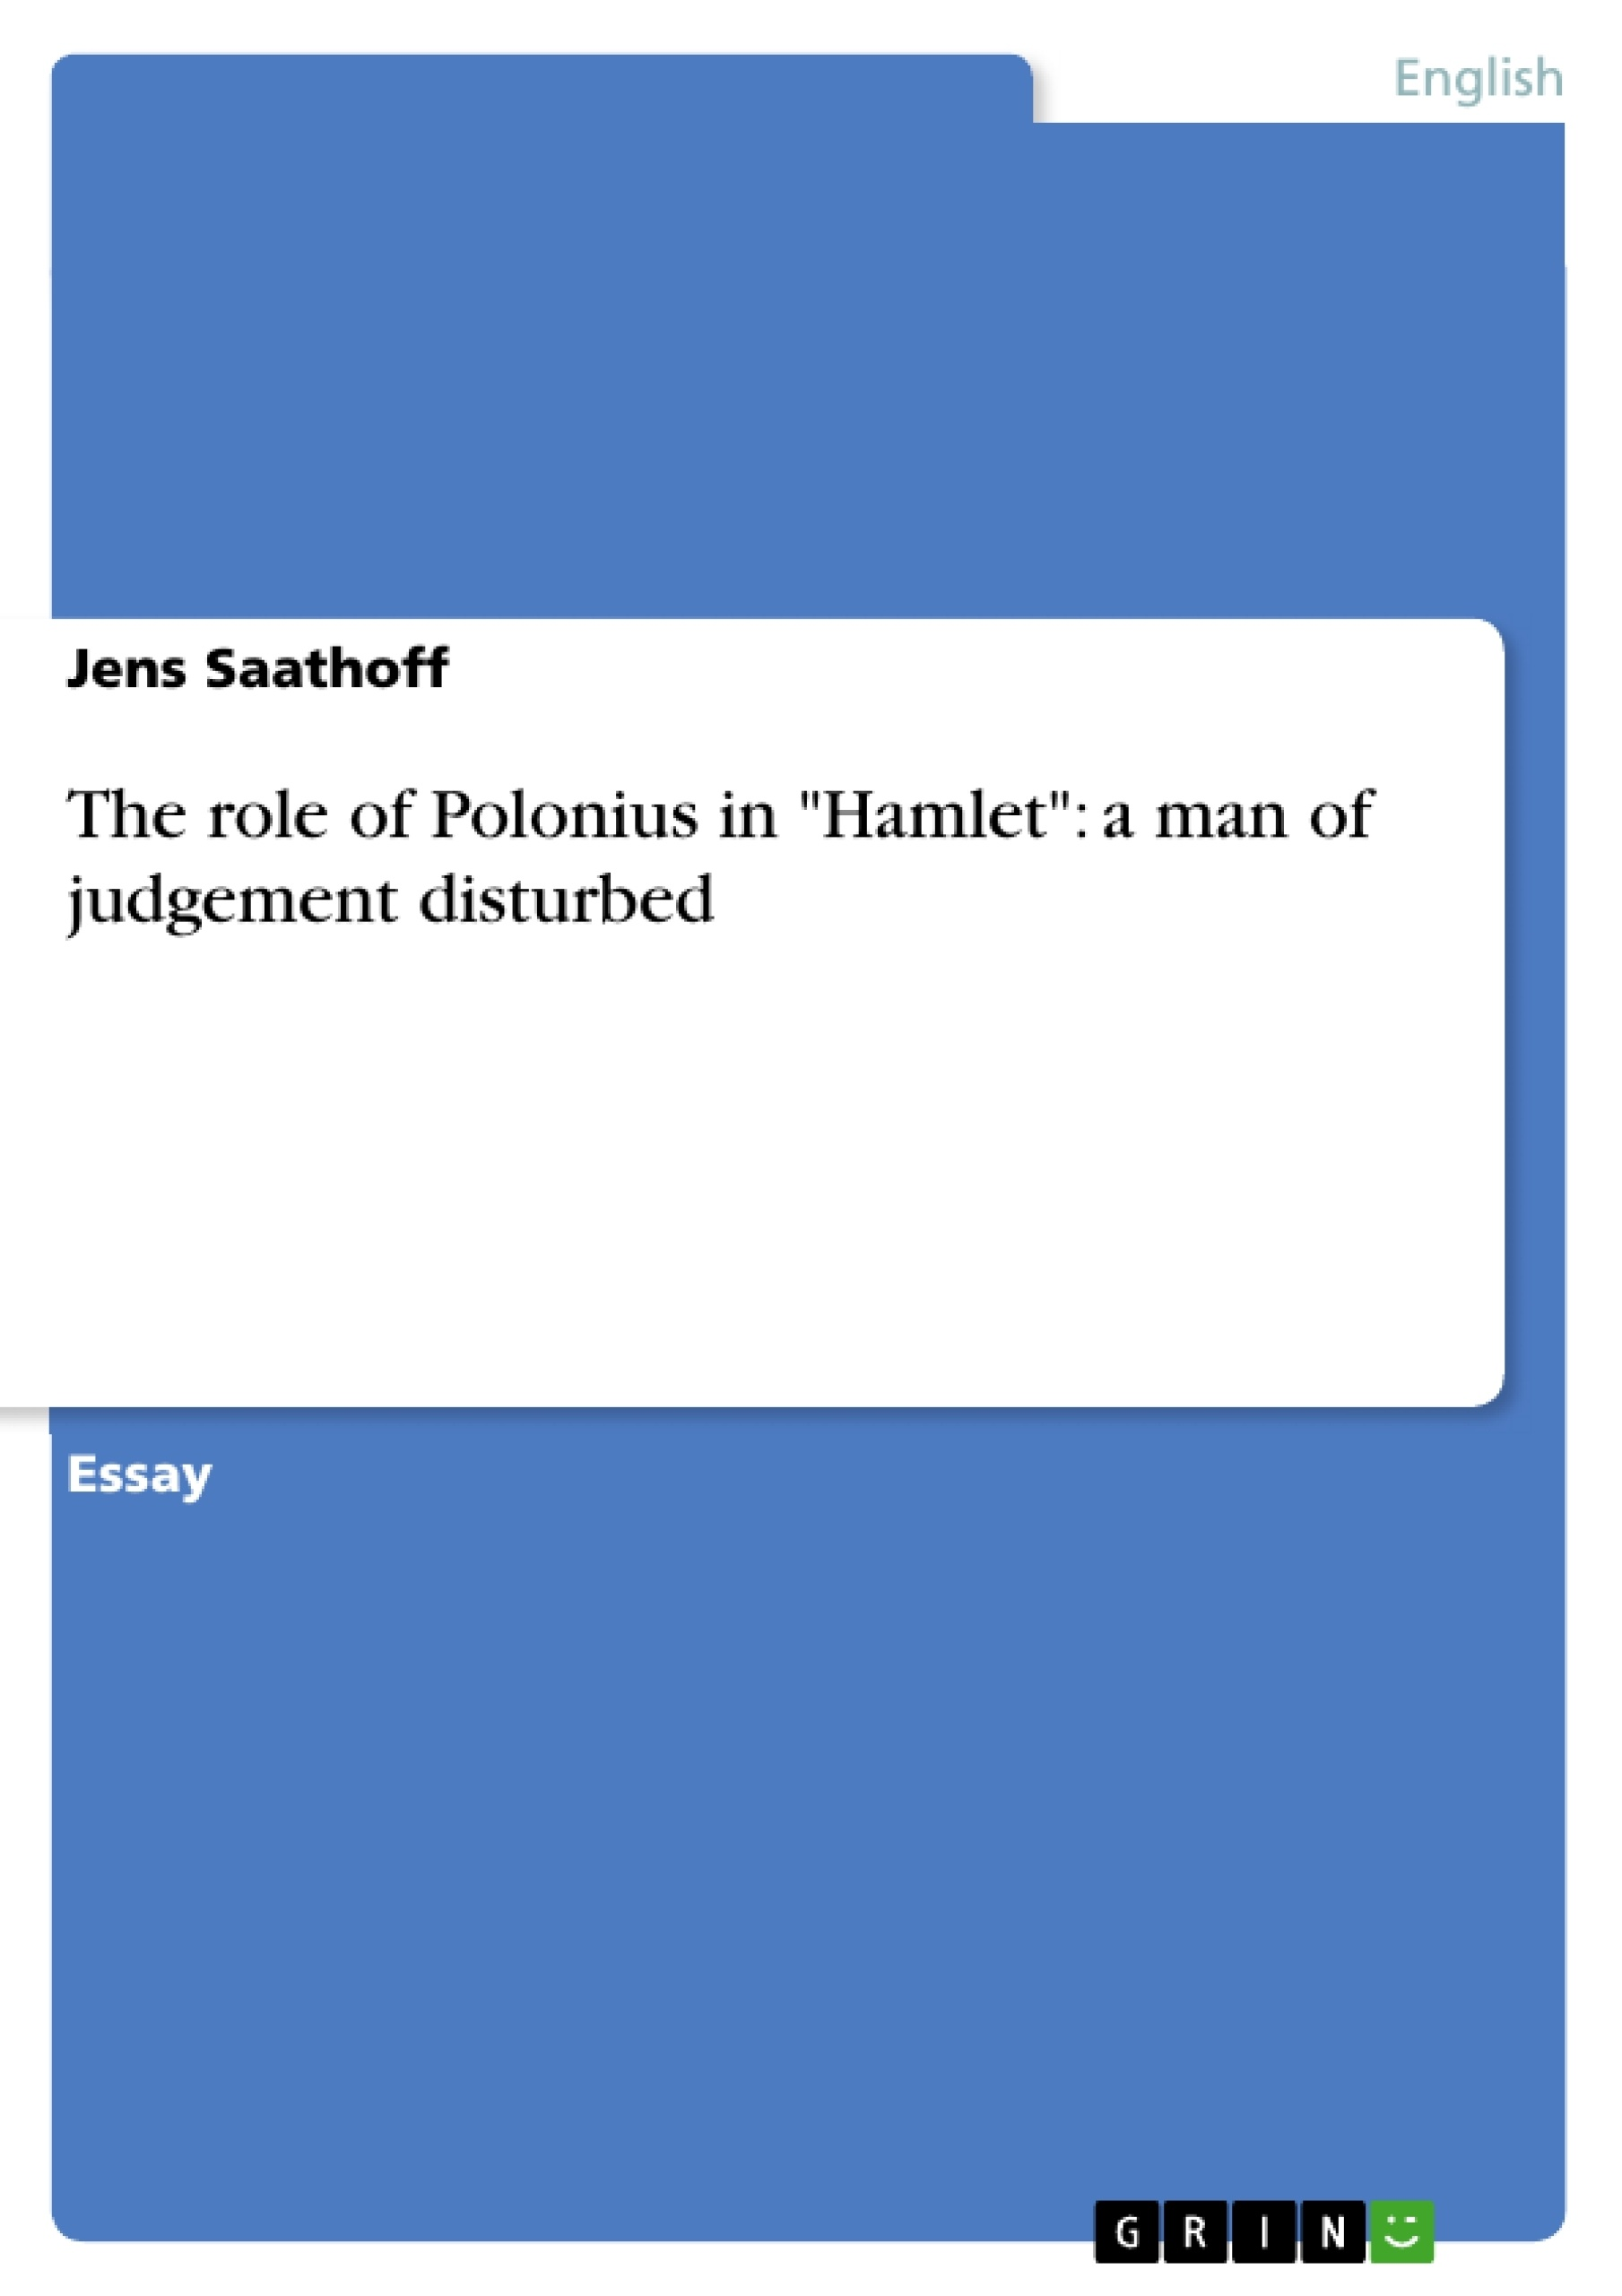 published essays on hamlet The tragedy of hamlet, prince of denmark which is simply referred to as hamlet is a tragedy written by shakespeare between 1599 and 1601the play.